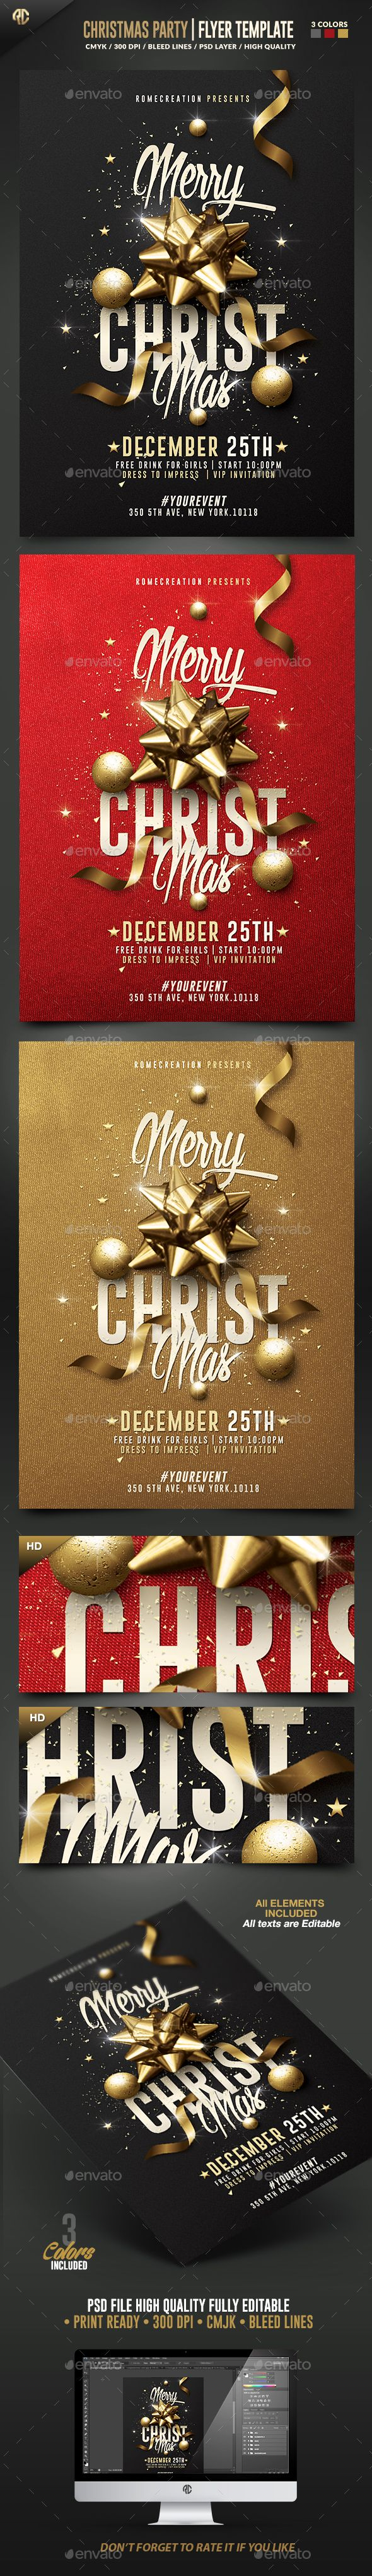 Xmas poster design - Classy Christmas Party Flyer Template Psd Design Download Http Graphicriver